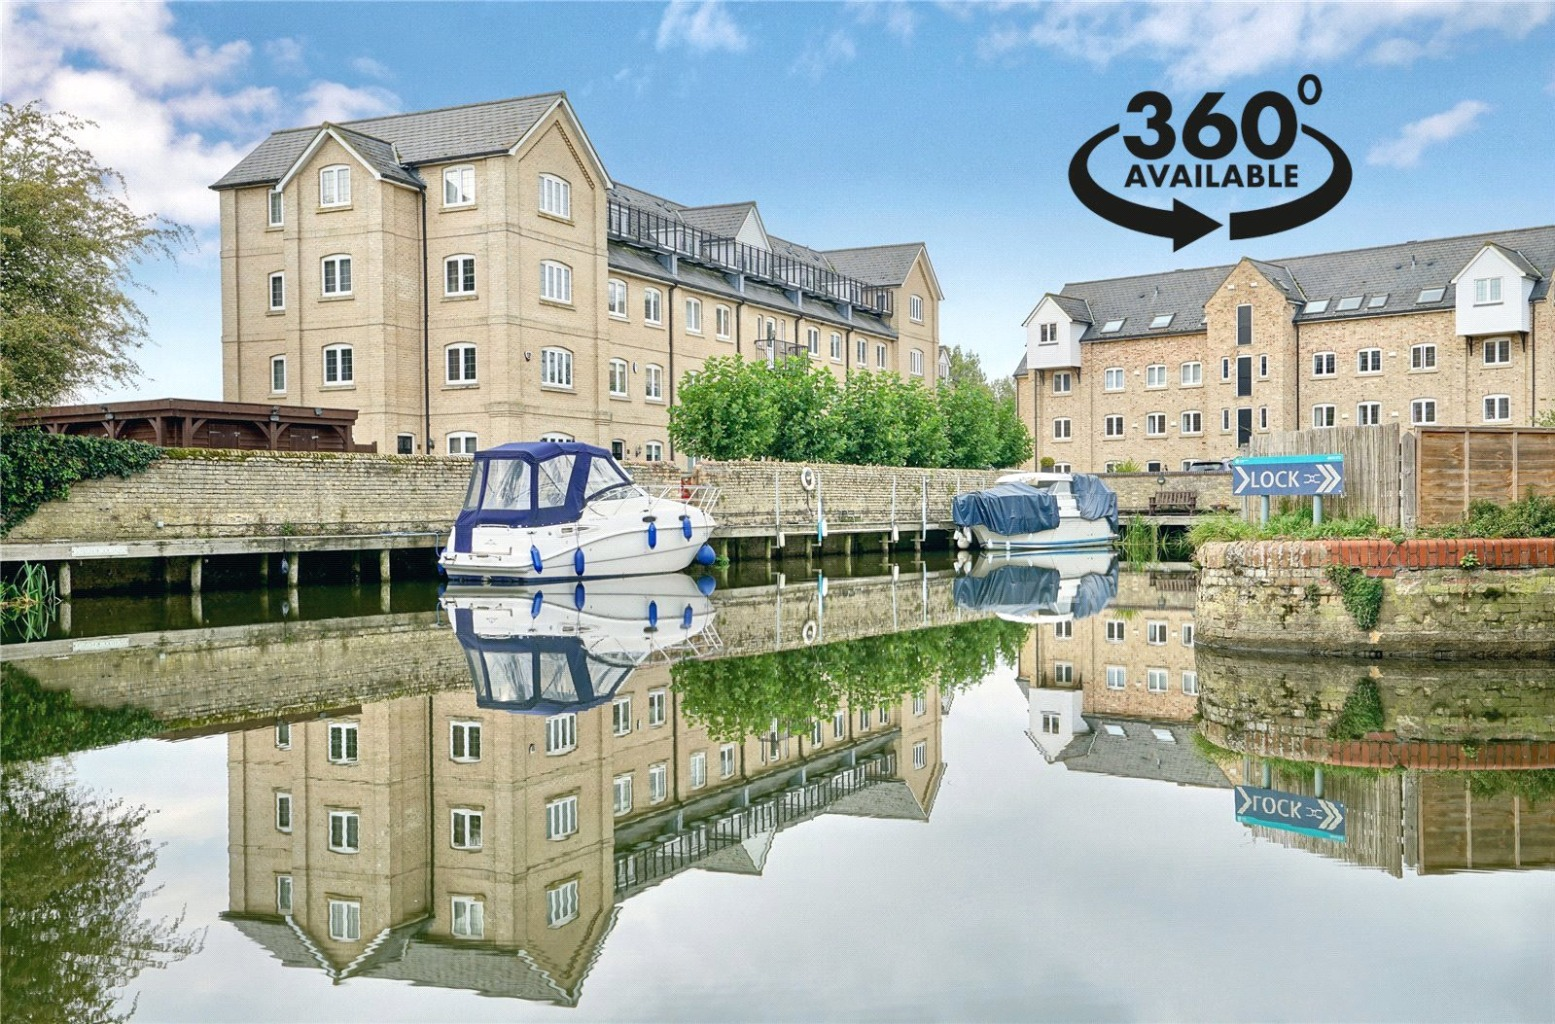 5 bed  for sale in The Old Flour Mills, Mill Road, St. Neots, PE19